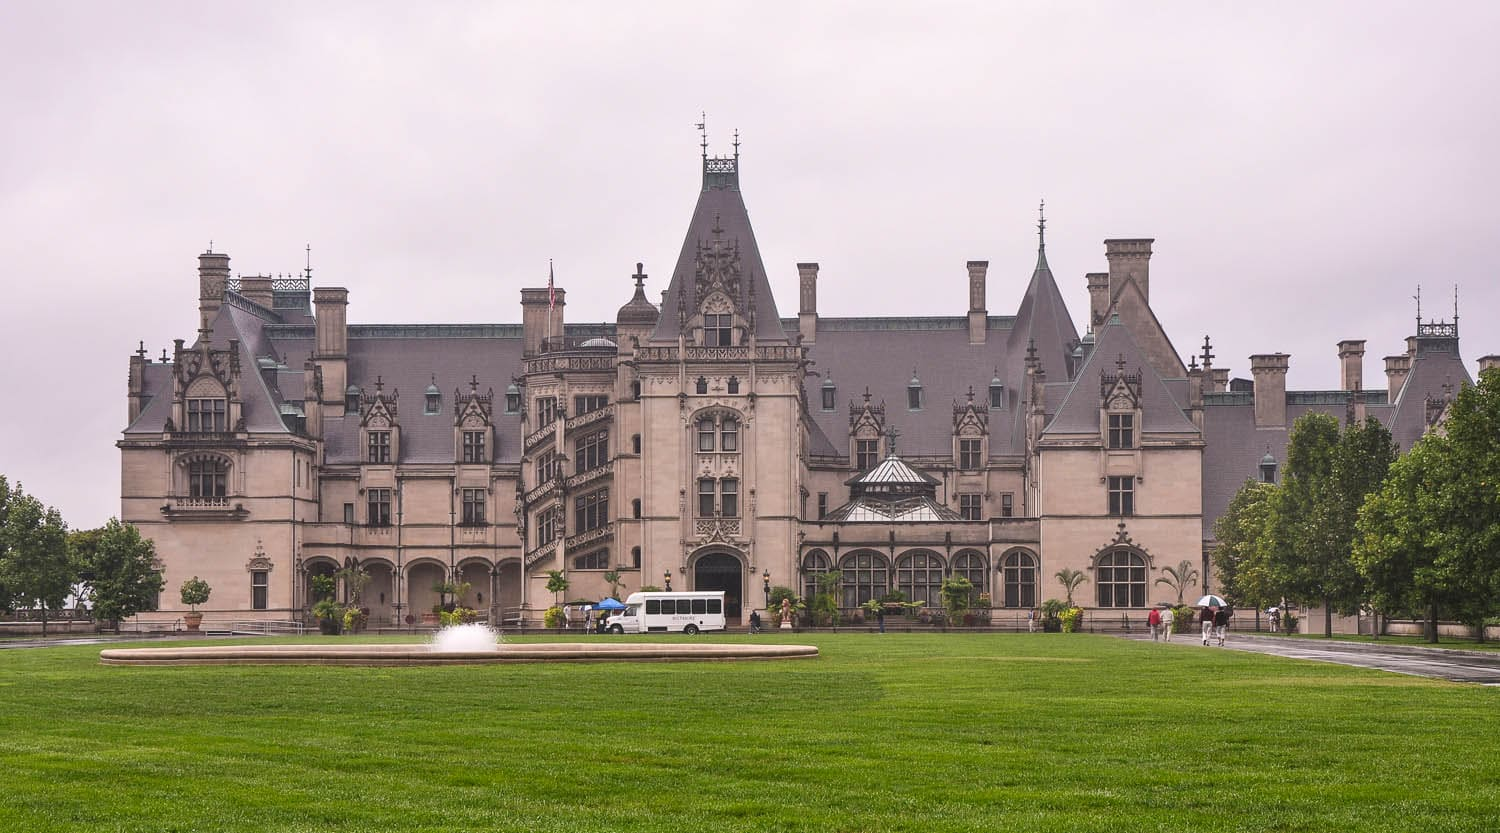 biltmore house essay When author denise kiernan moved to asheville, north carolina, several years ago, she found the subject of her next book right in front of her — all 175000 square feet of it she became entranced by biltmore, the grand mansion built by george vanderbilt from 1890 to 1895 on a mountain estate that grew.